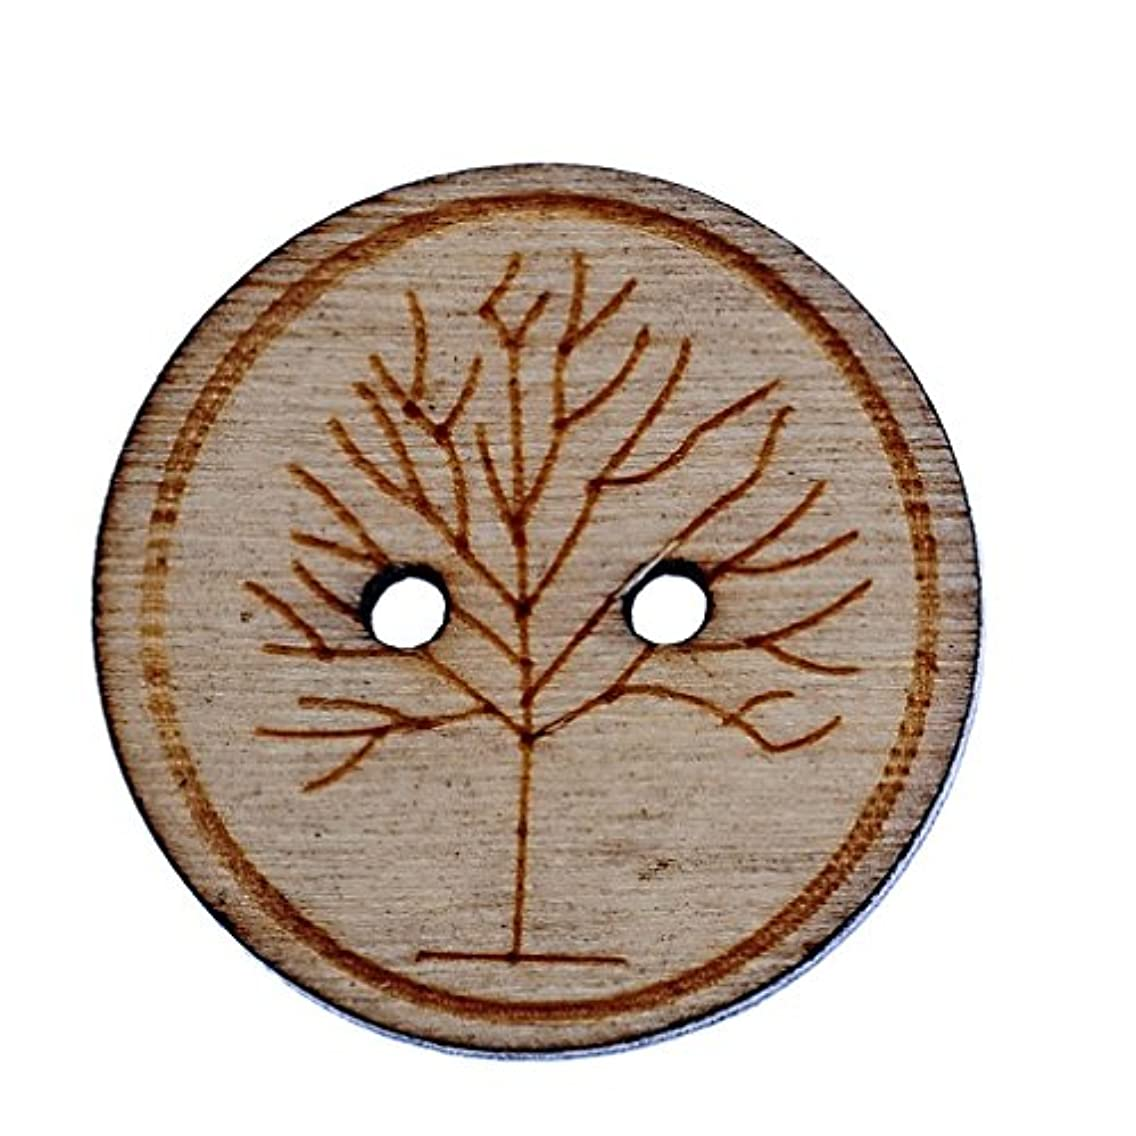 Souarts 25mm Pack of 50pcs Natural Color Round Shape 2 Holes Wood Wooden Buttons Life Tree Printed